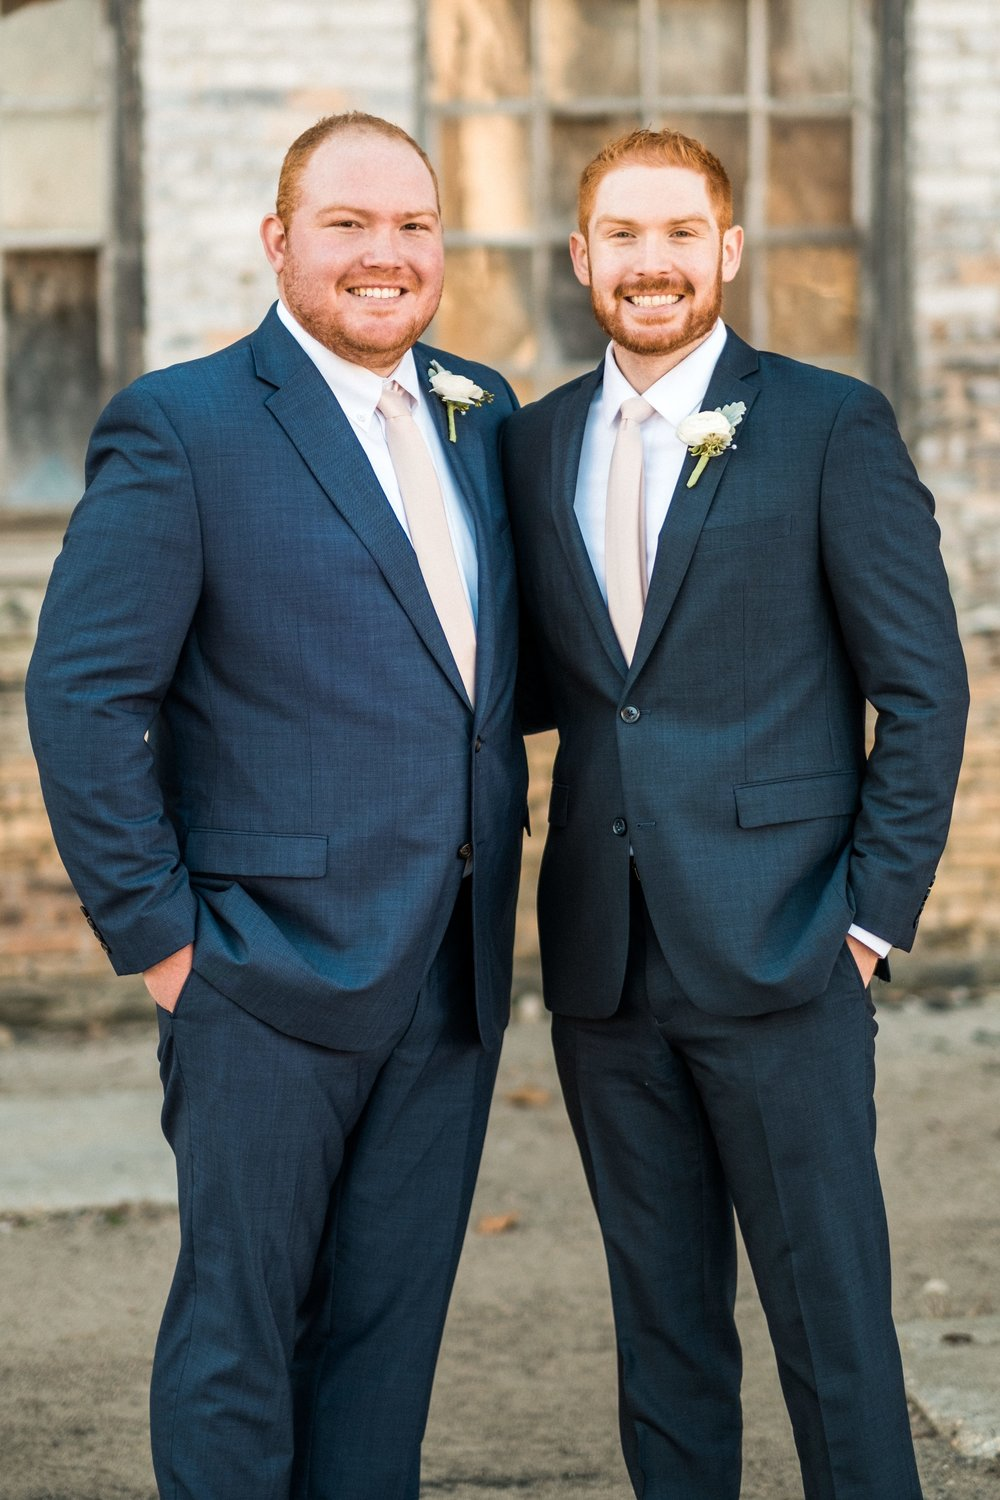 groom and best man wedding portrait minnesota wedding